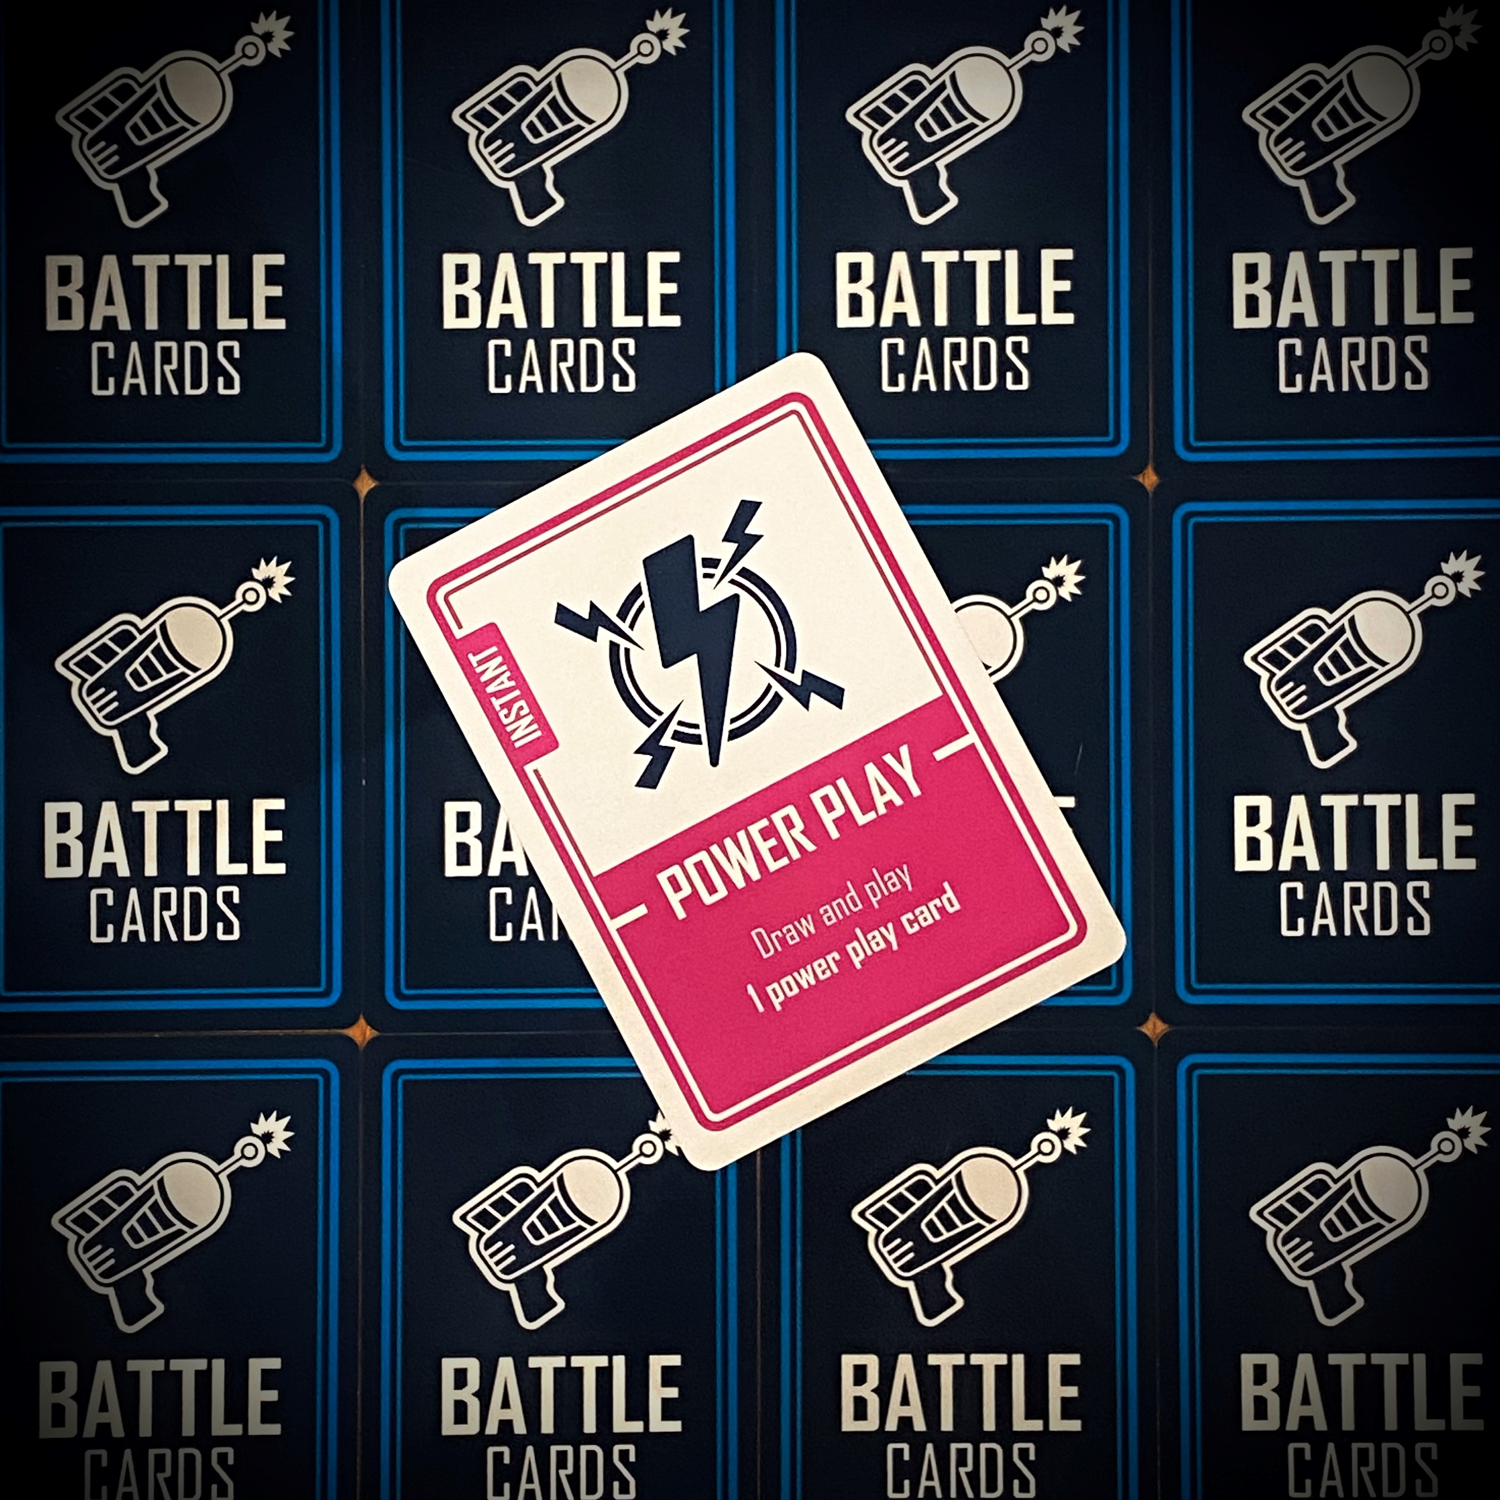 This Battle card triggers a Power Play will the card be very good or very bad?